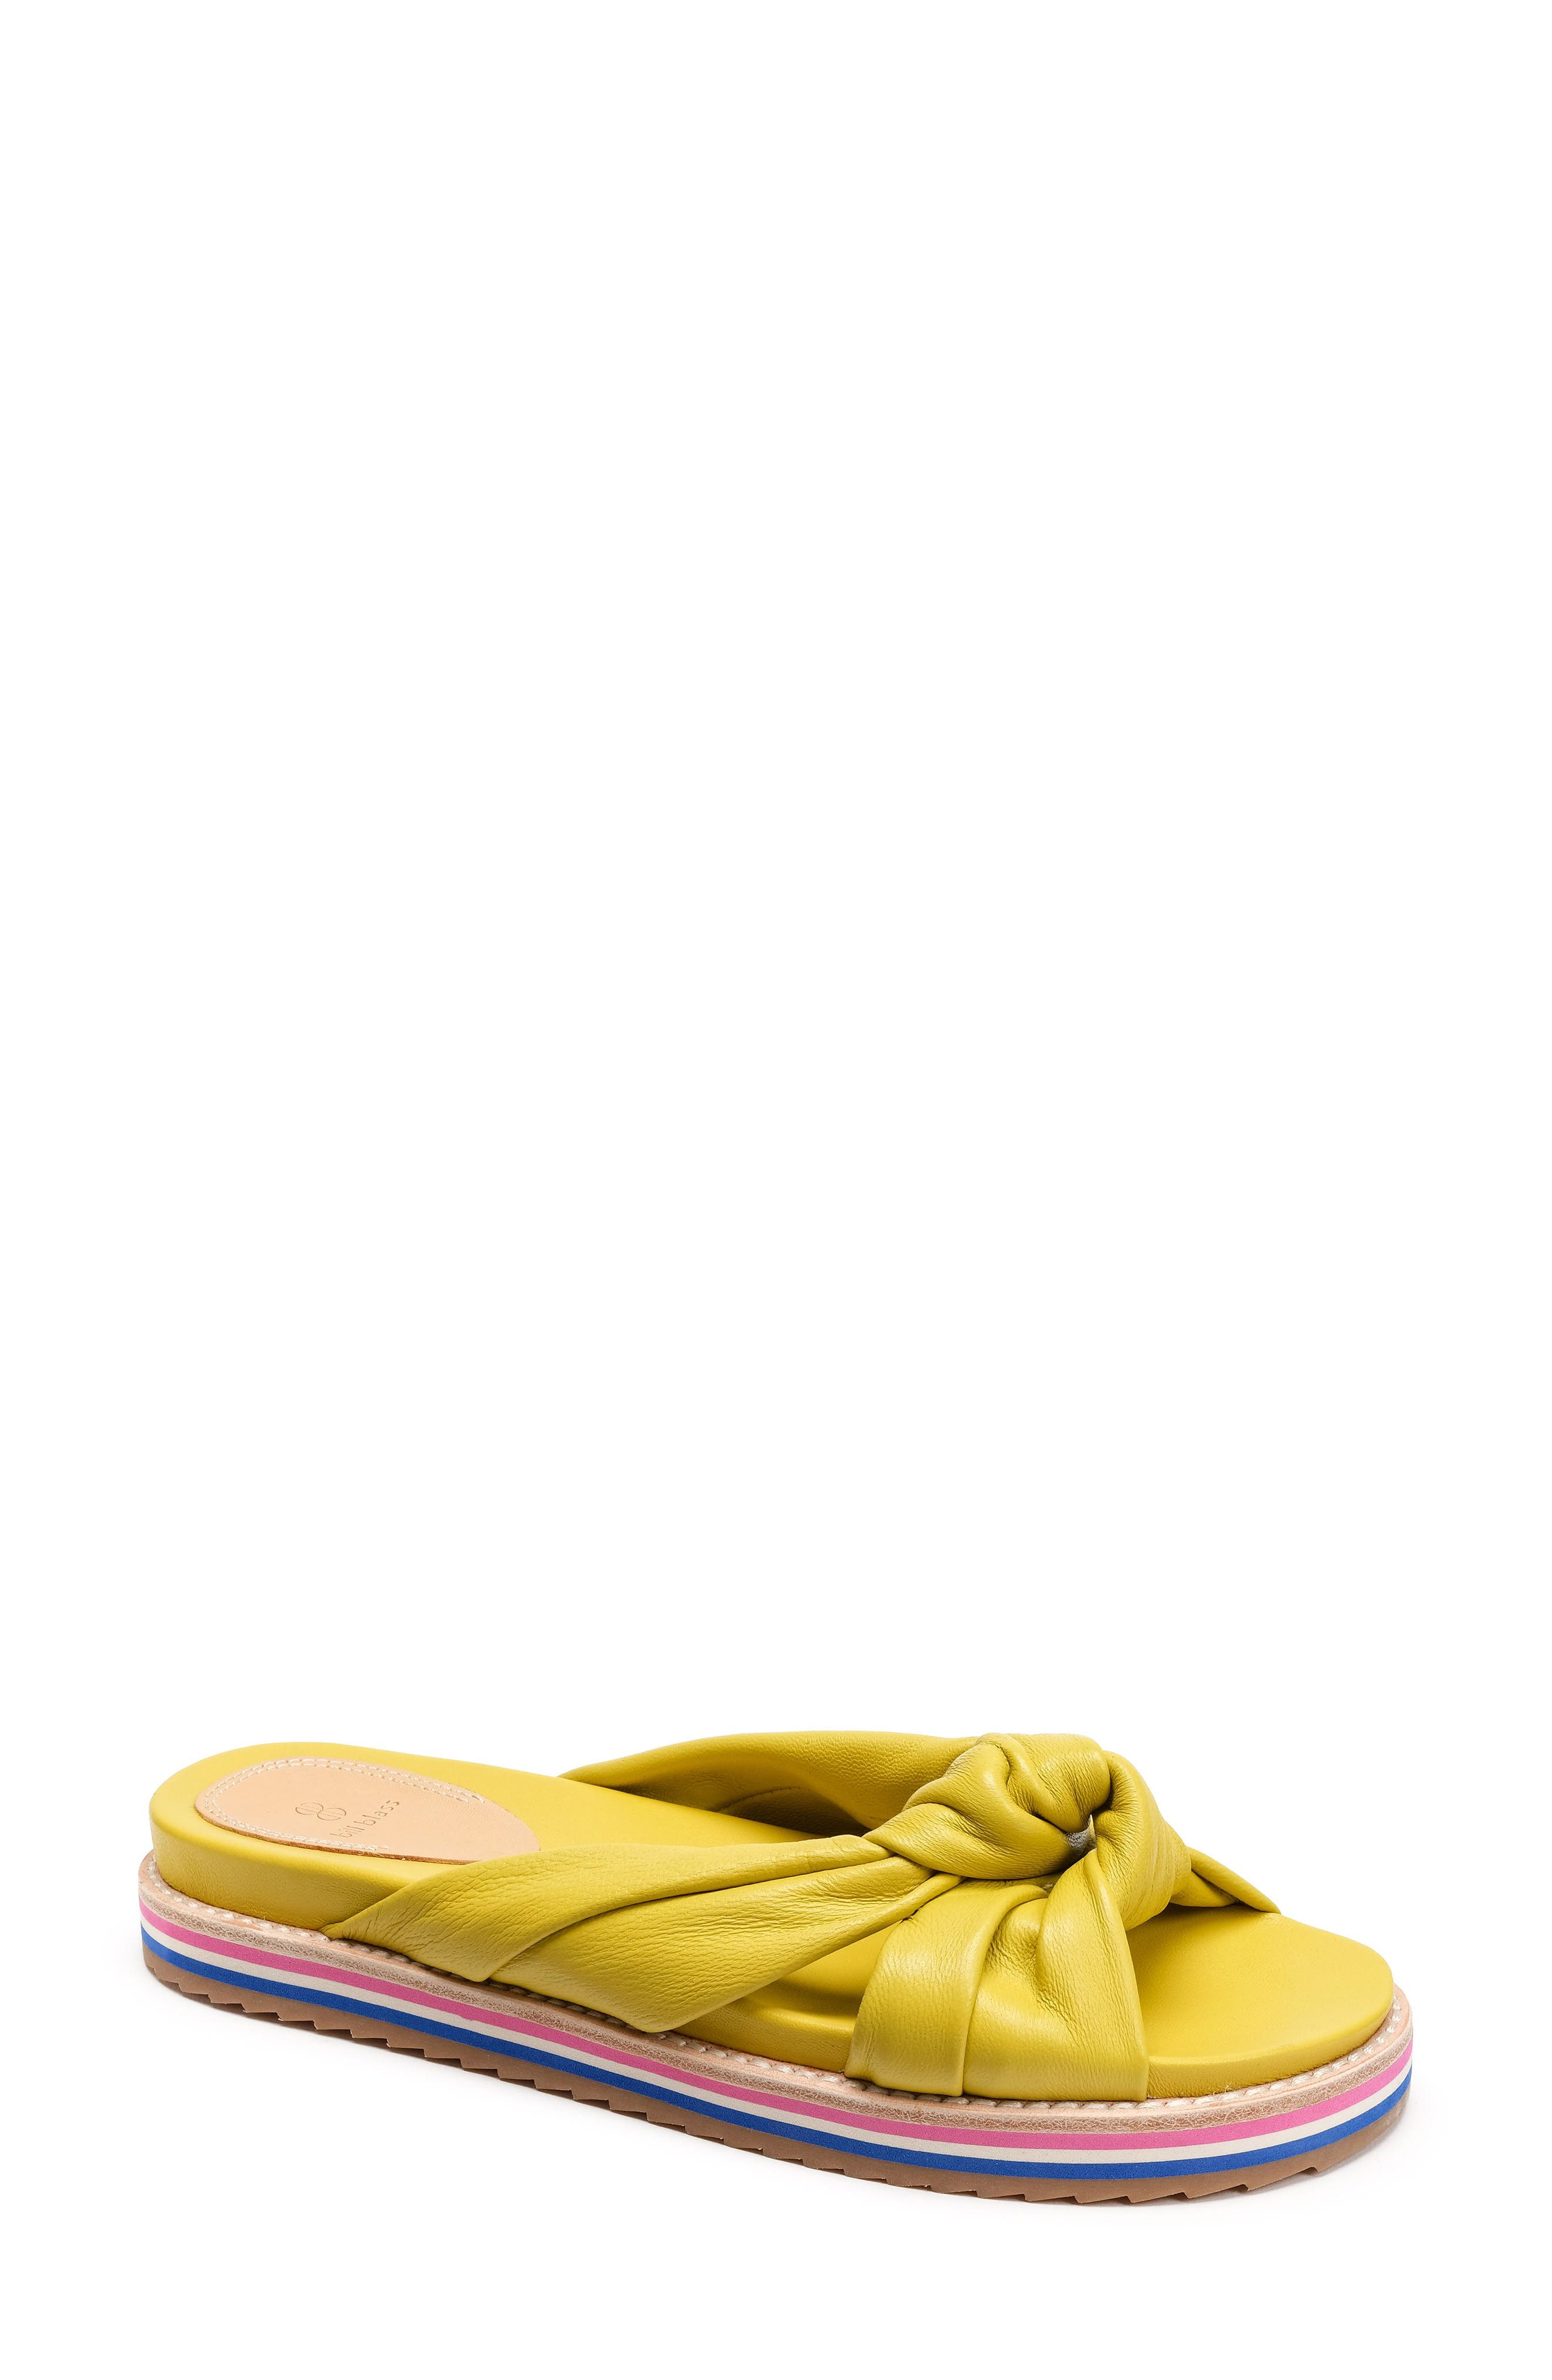 Padget Knotted Slide Sandal,                             Main thumbnail 1, color,                             Yellow